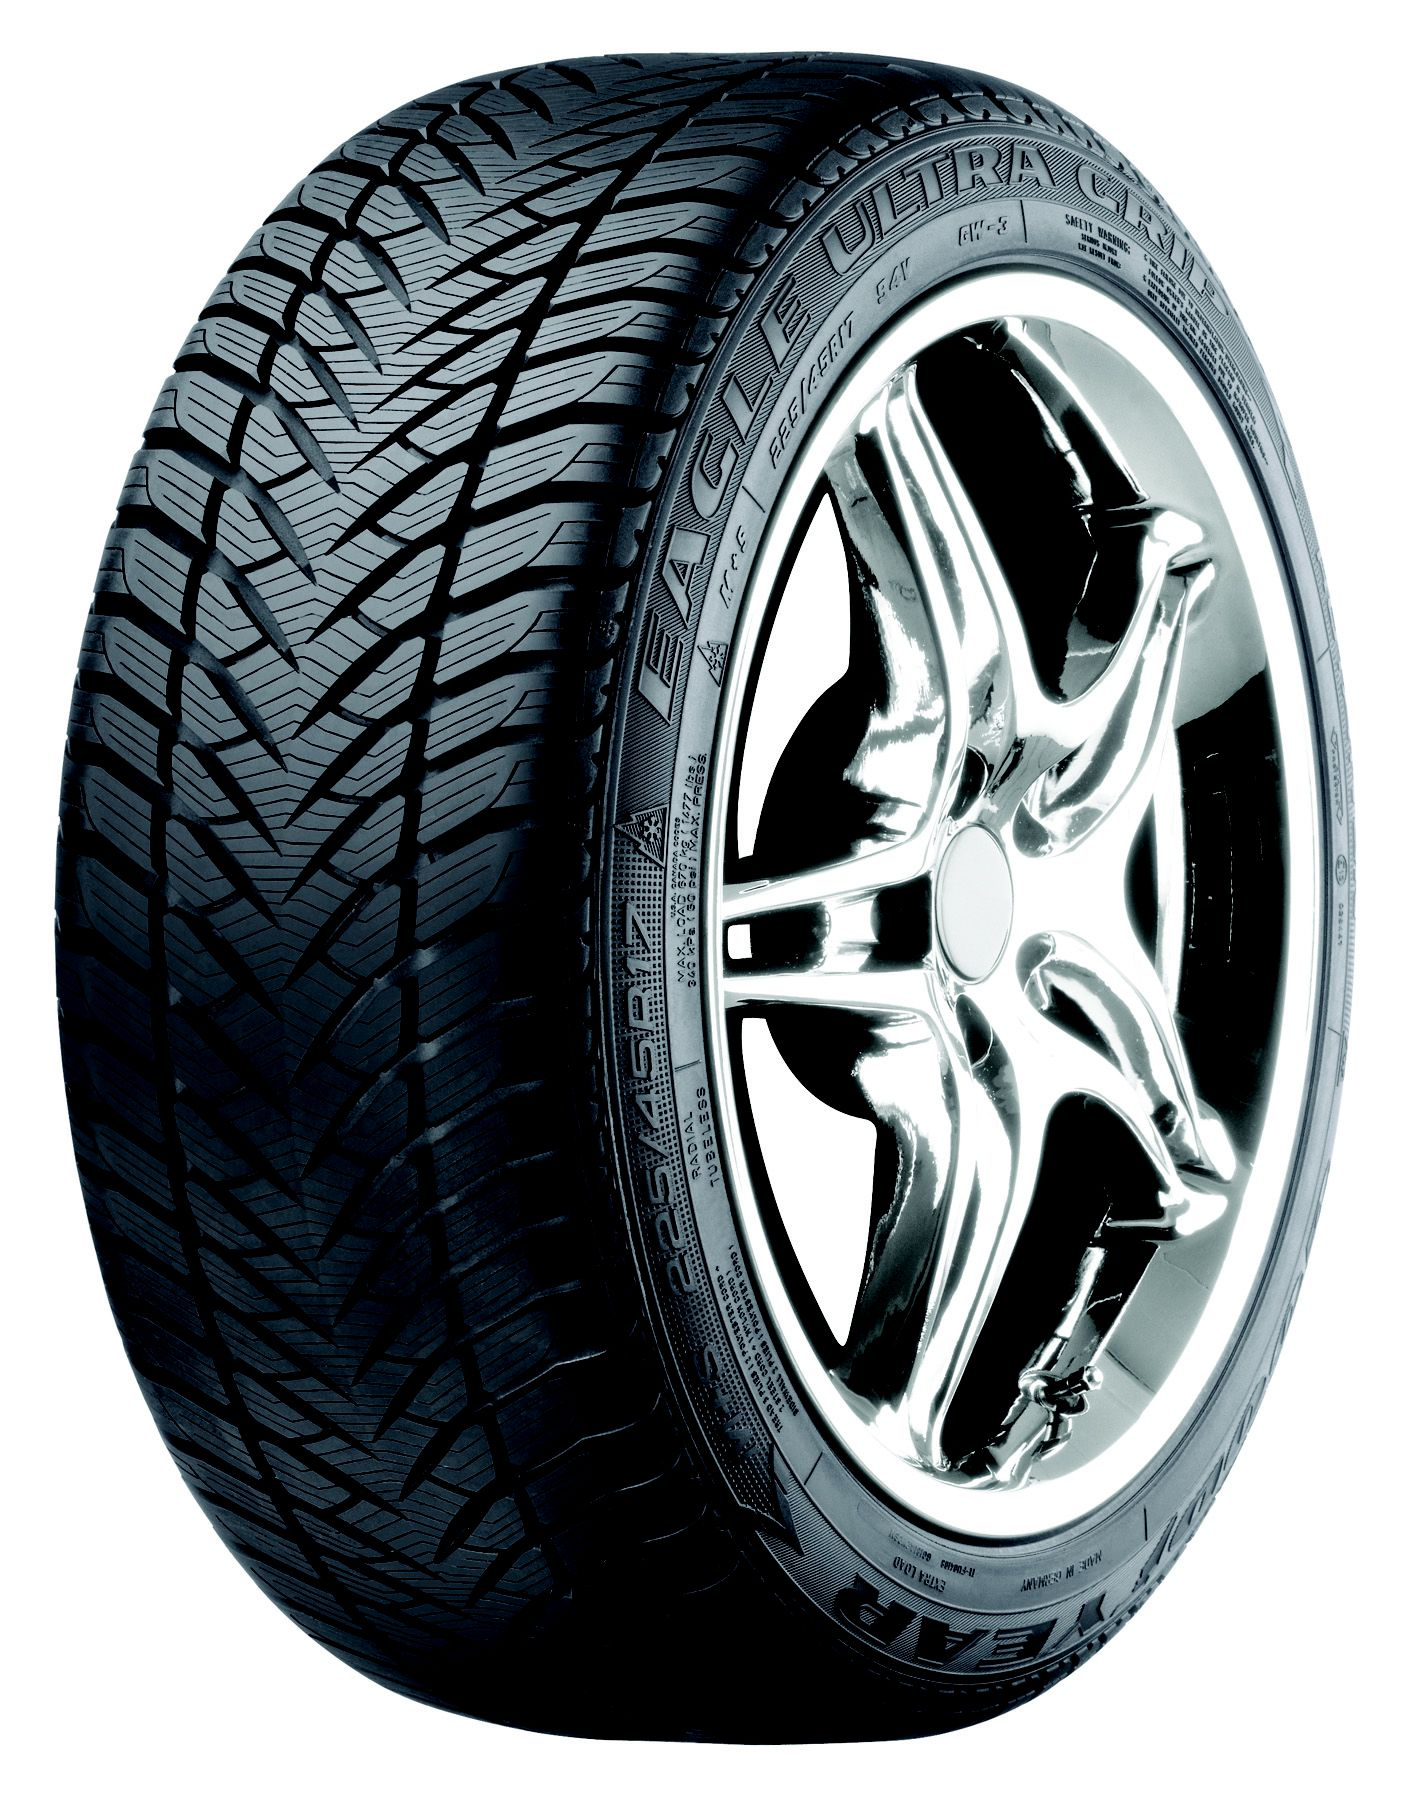 goodyear eagle ultra grip gw 3 225 50r17 94h bw winter tire automotive tires wheels. Black Bedroom Furniture Sets. Home Design Ideas